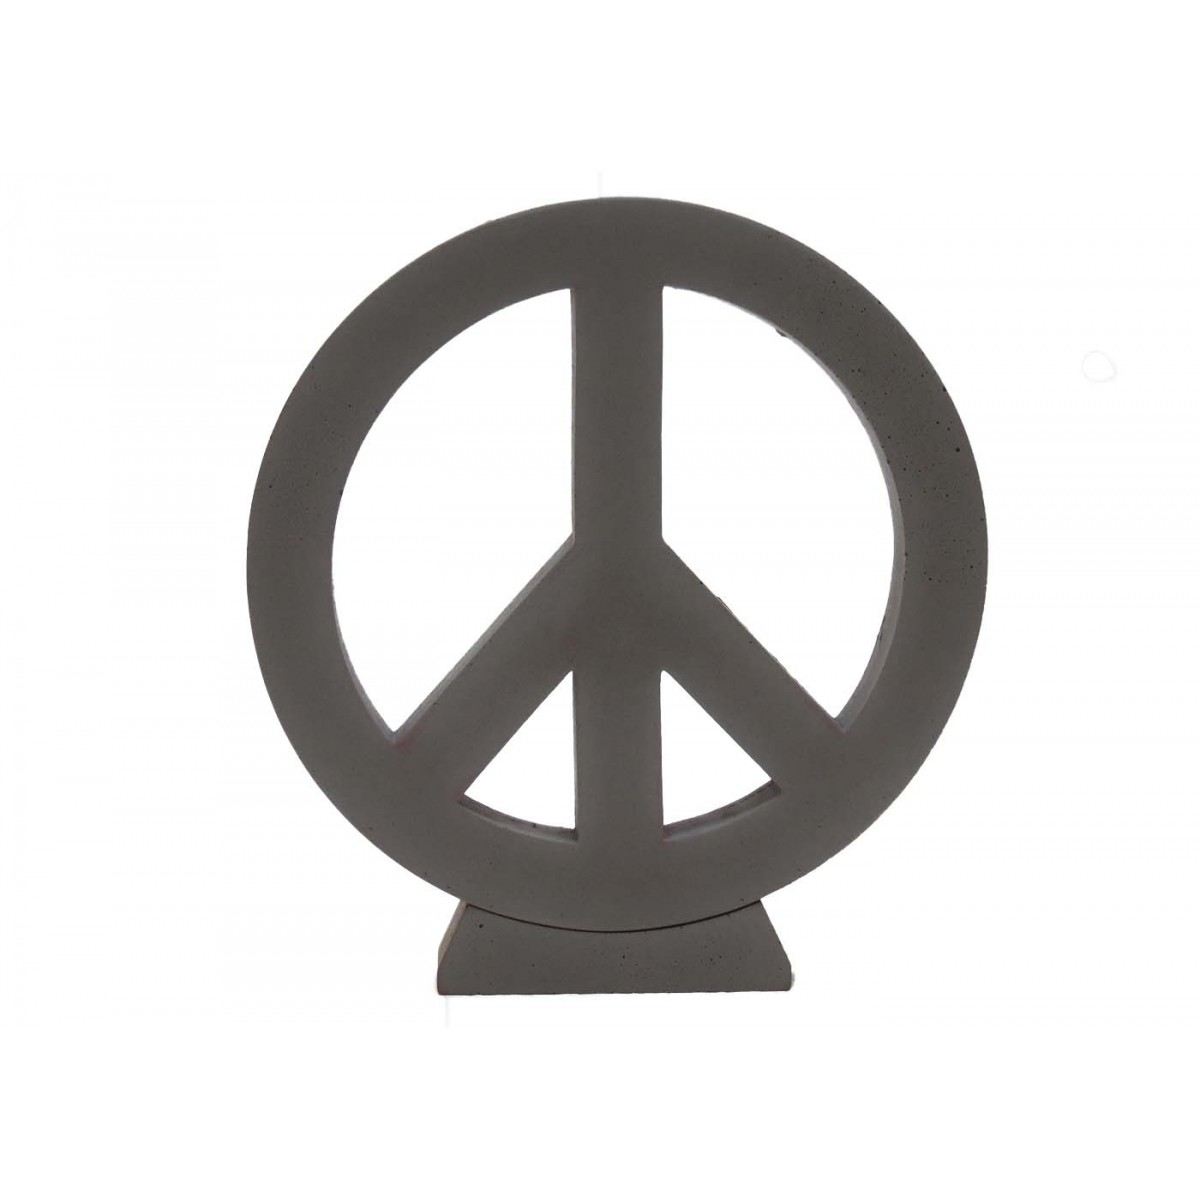 objet d coratif en b ton tr s tendance peace love sign. Black Bedroom Furniture Sets. Home Design Ideas